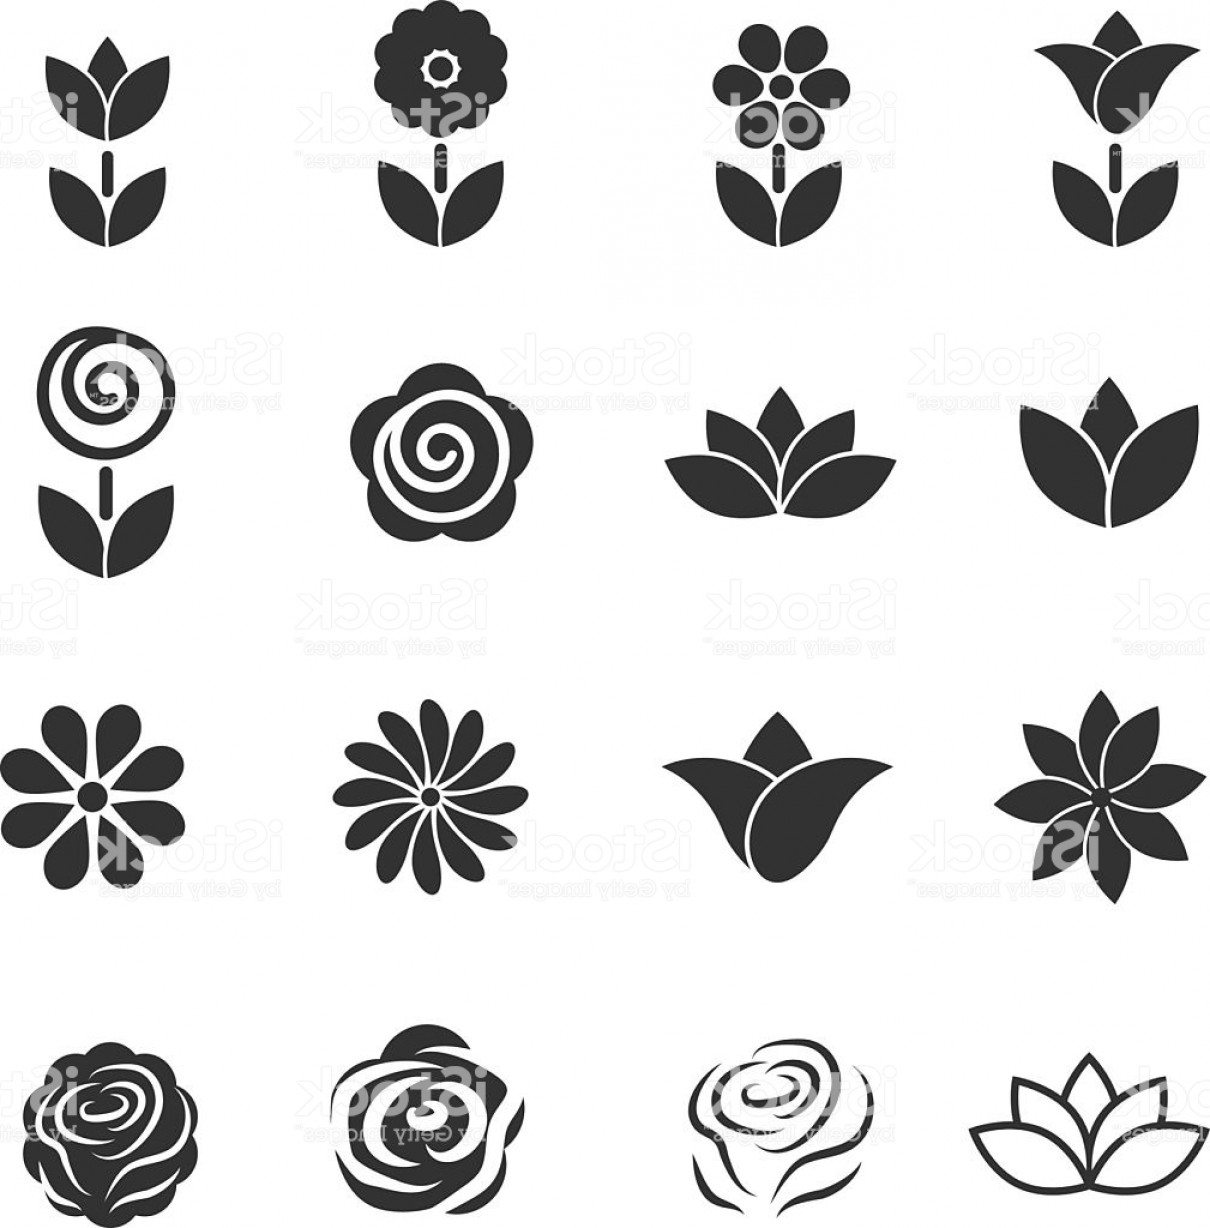 Icon Of Flower Vectors: Flower Icon Flower Beauty Symbol Vector Illustration Gm